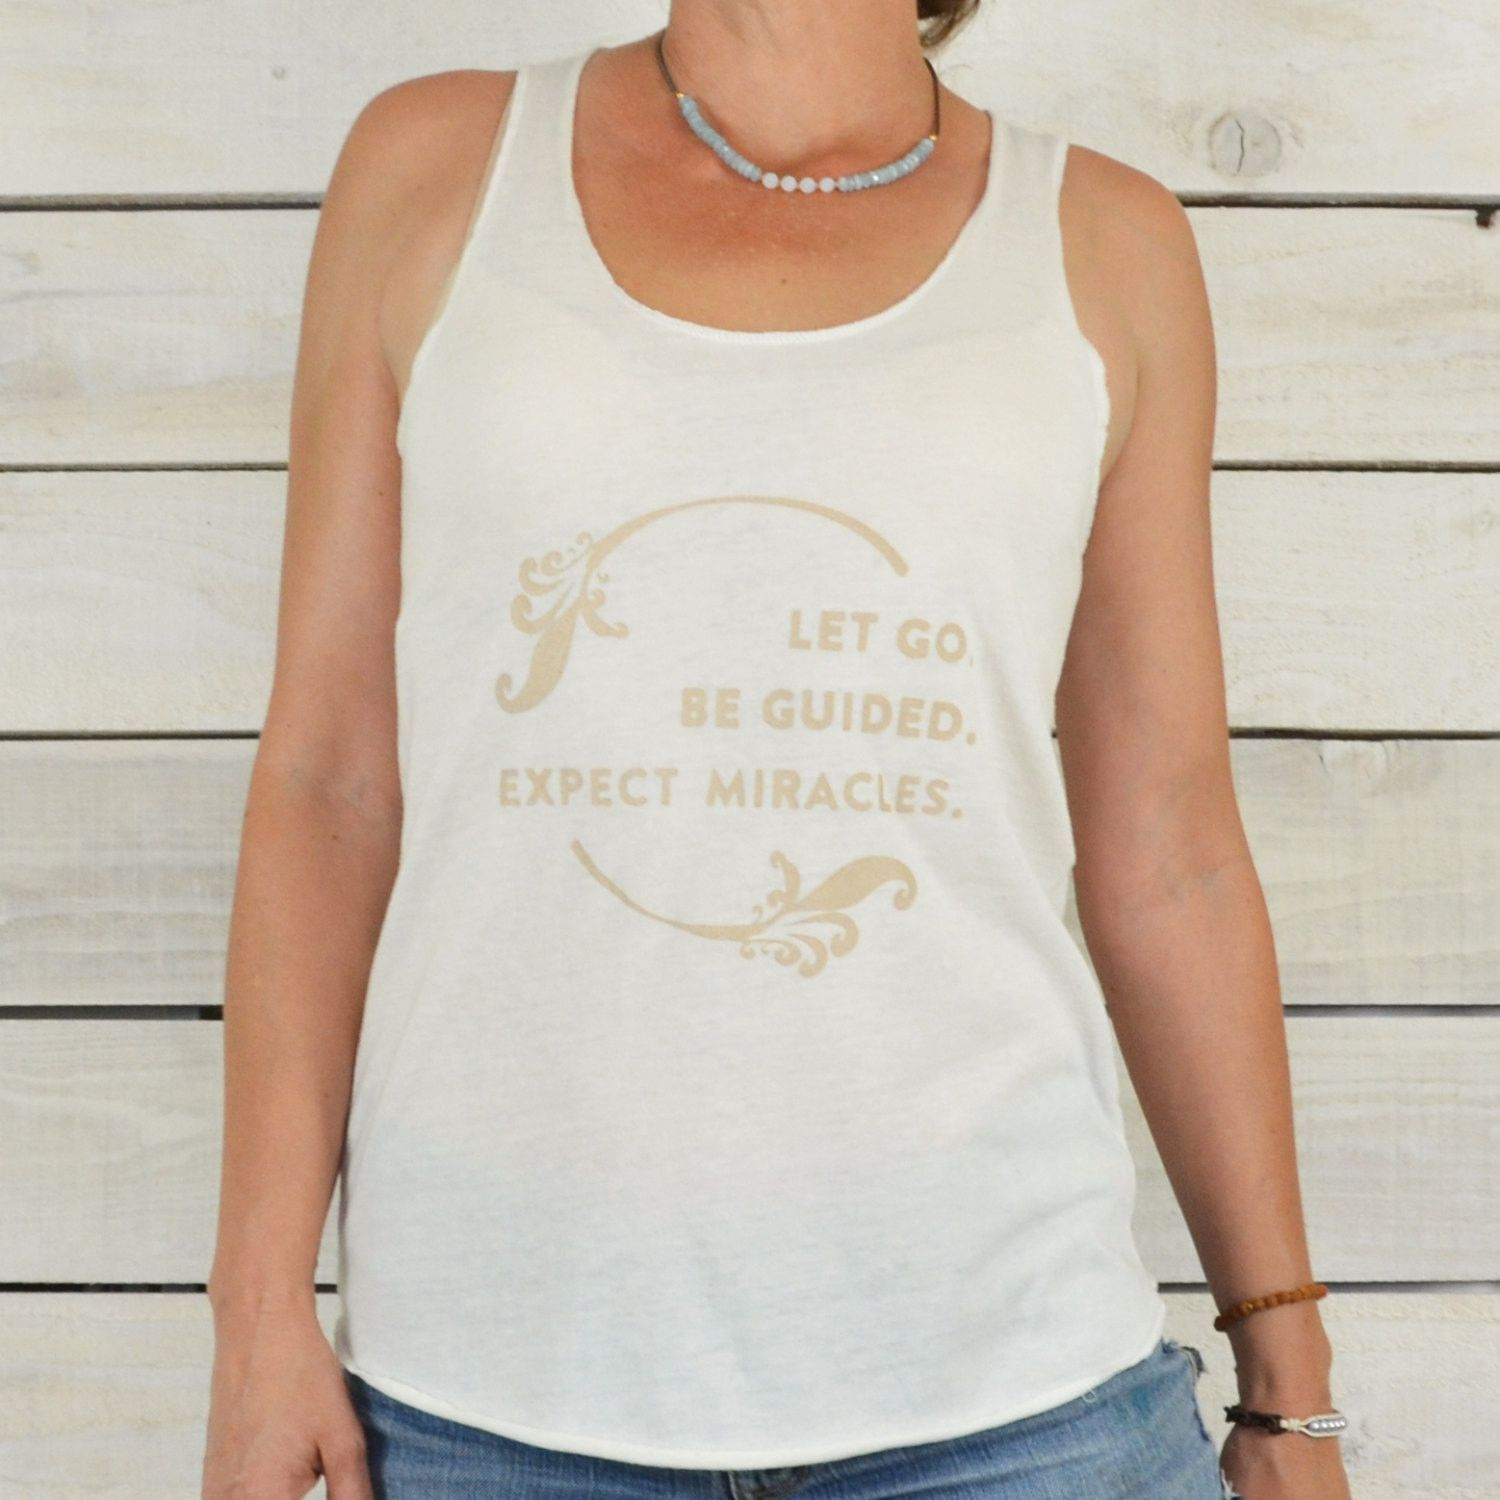 Let Go, Be Guided, Expect Miracles. - Racer Back Tank